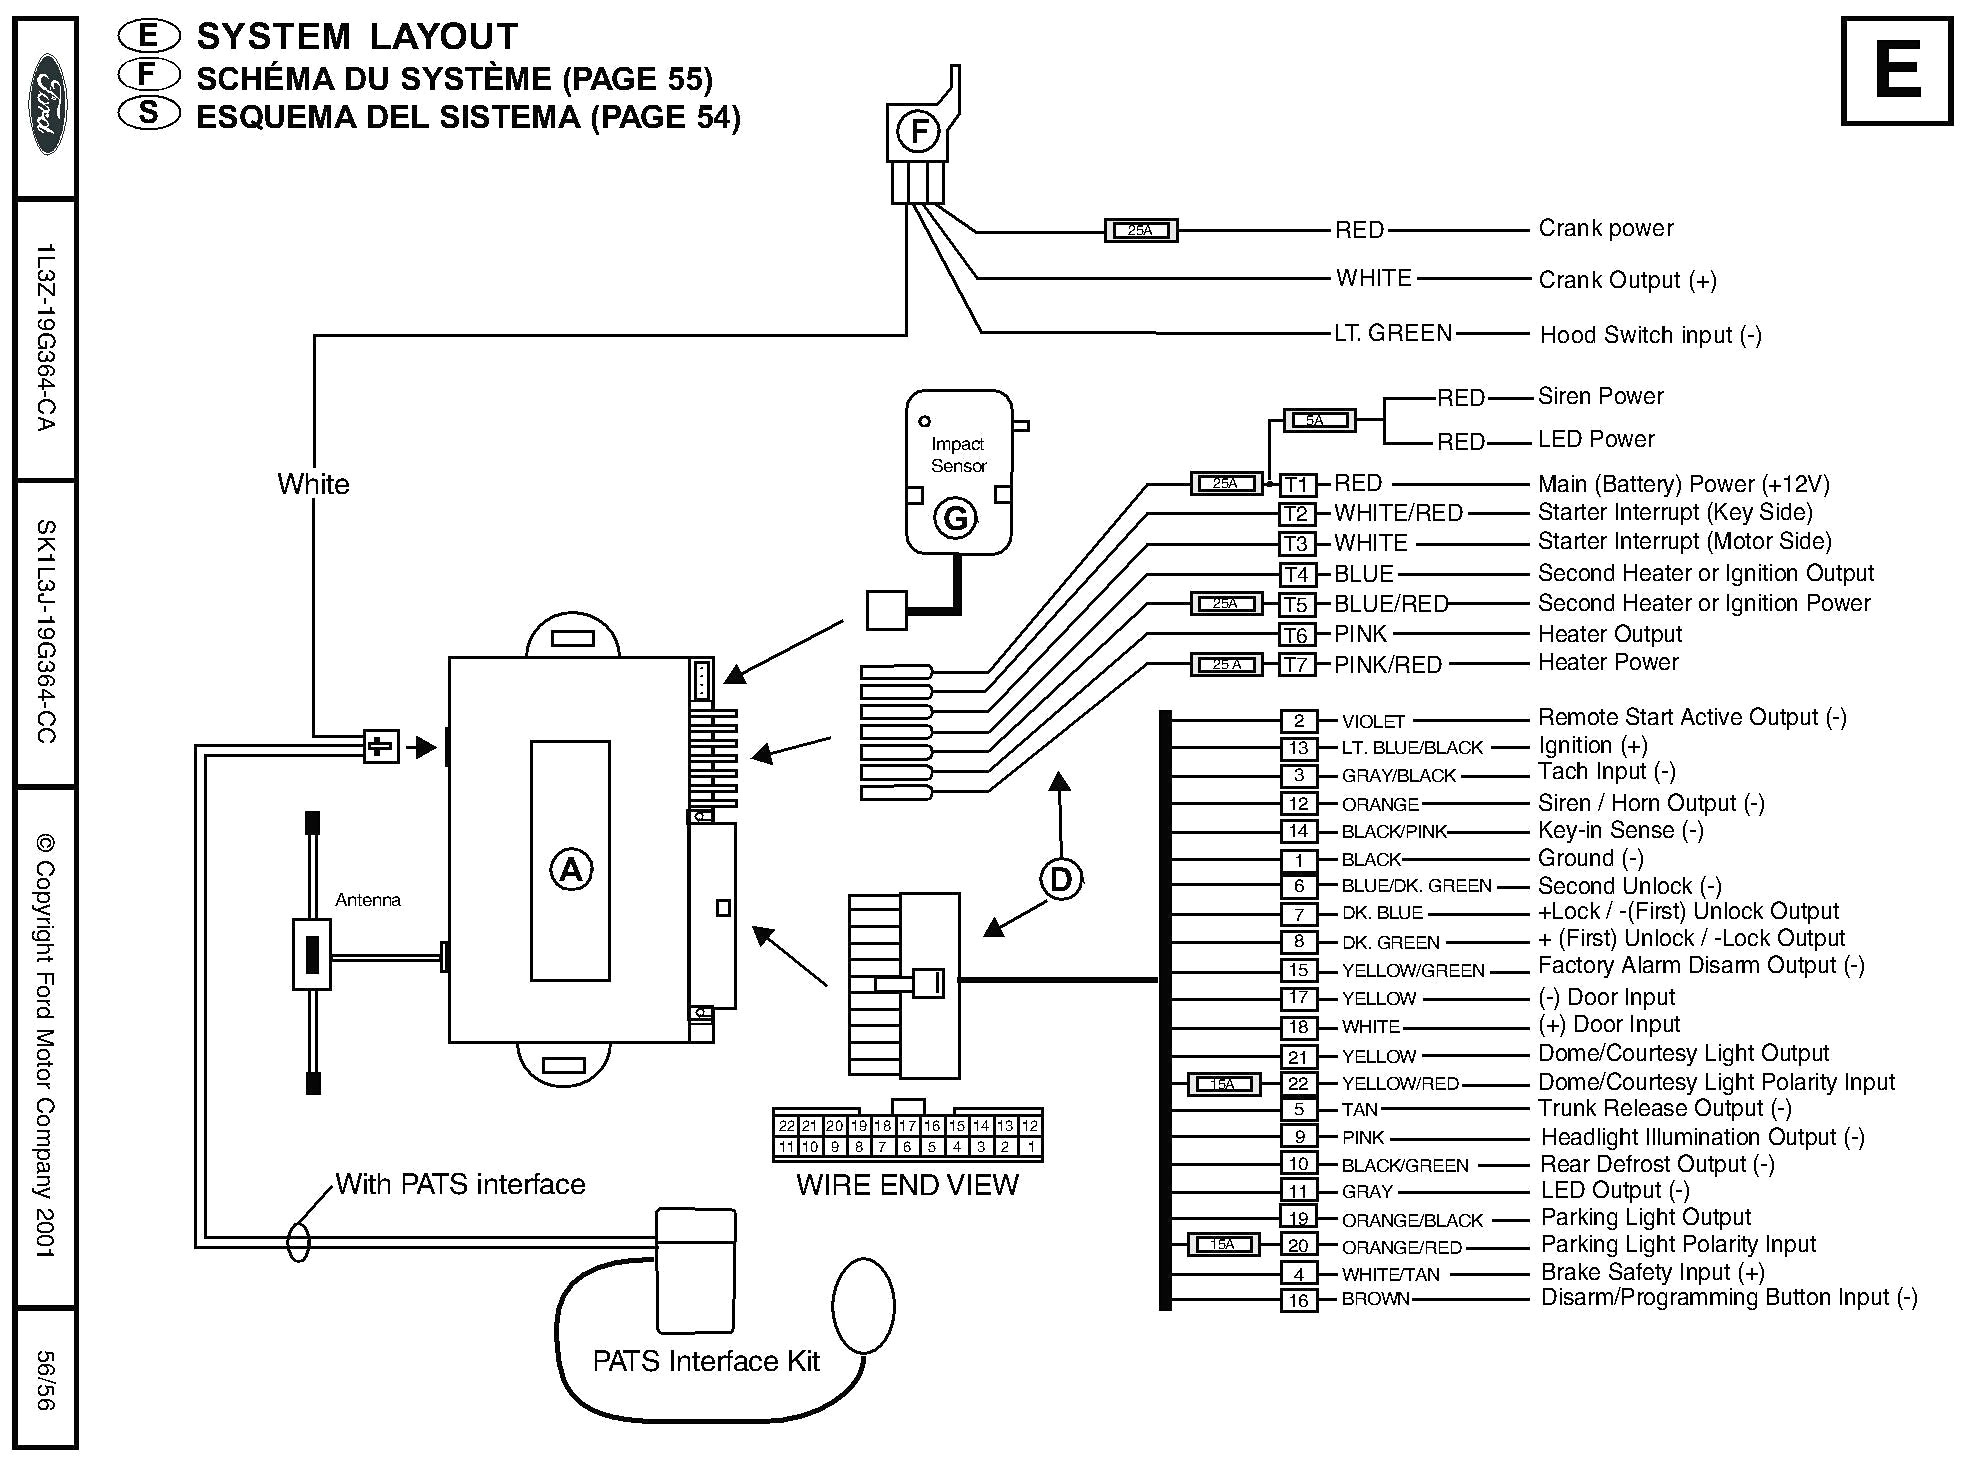 bulldog remote car starter diagram ribu1c wiring    diagram    sample wiring    diagram    sample  ribu1c wiring    diagram    sample wiring    diagram    sample